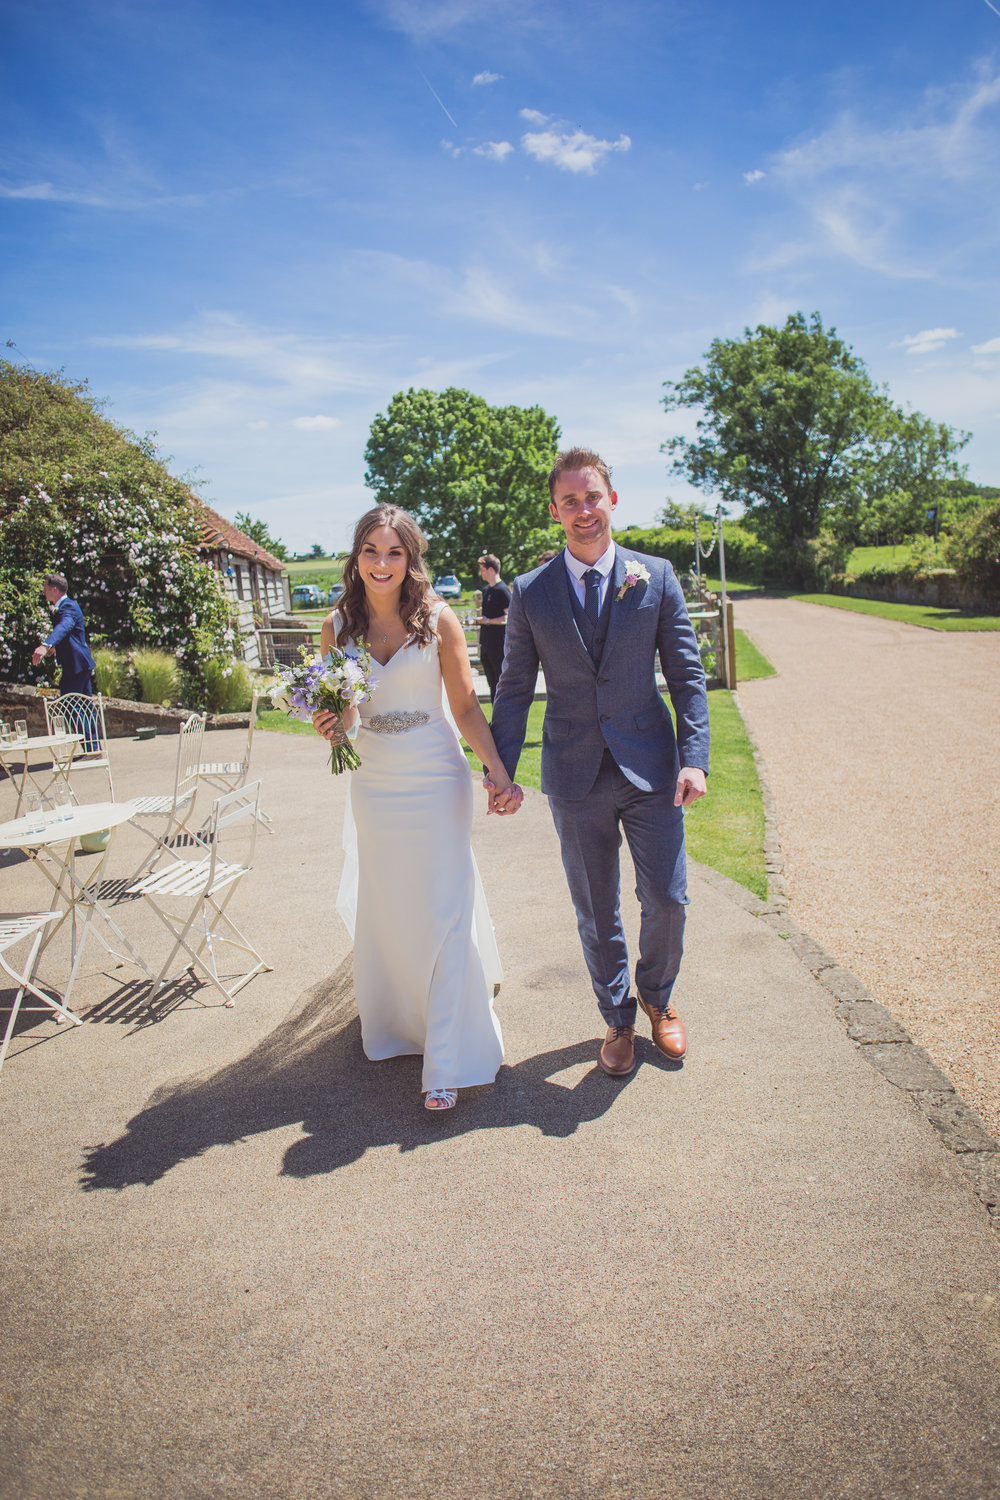 Grittenham Barn female wedding photographers west sussex petworth social-74.jpg